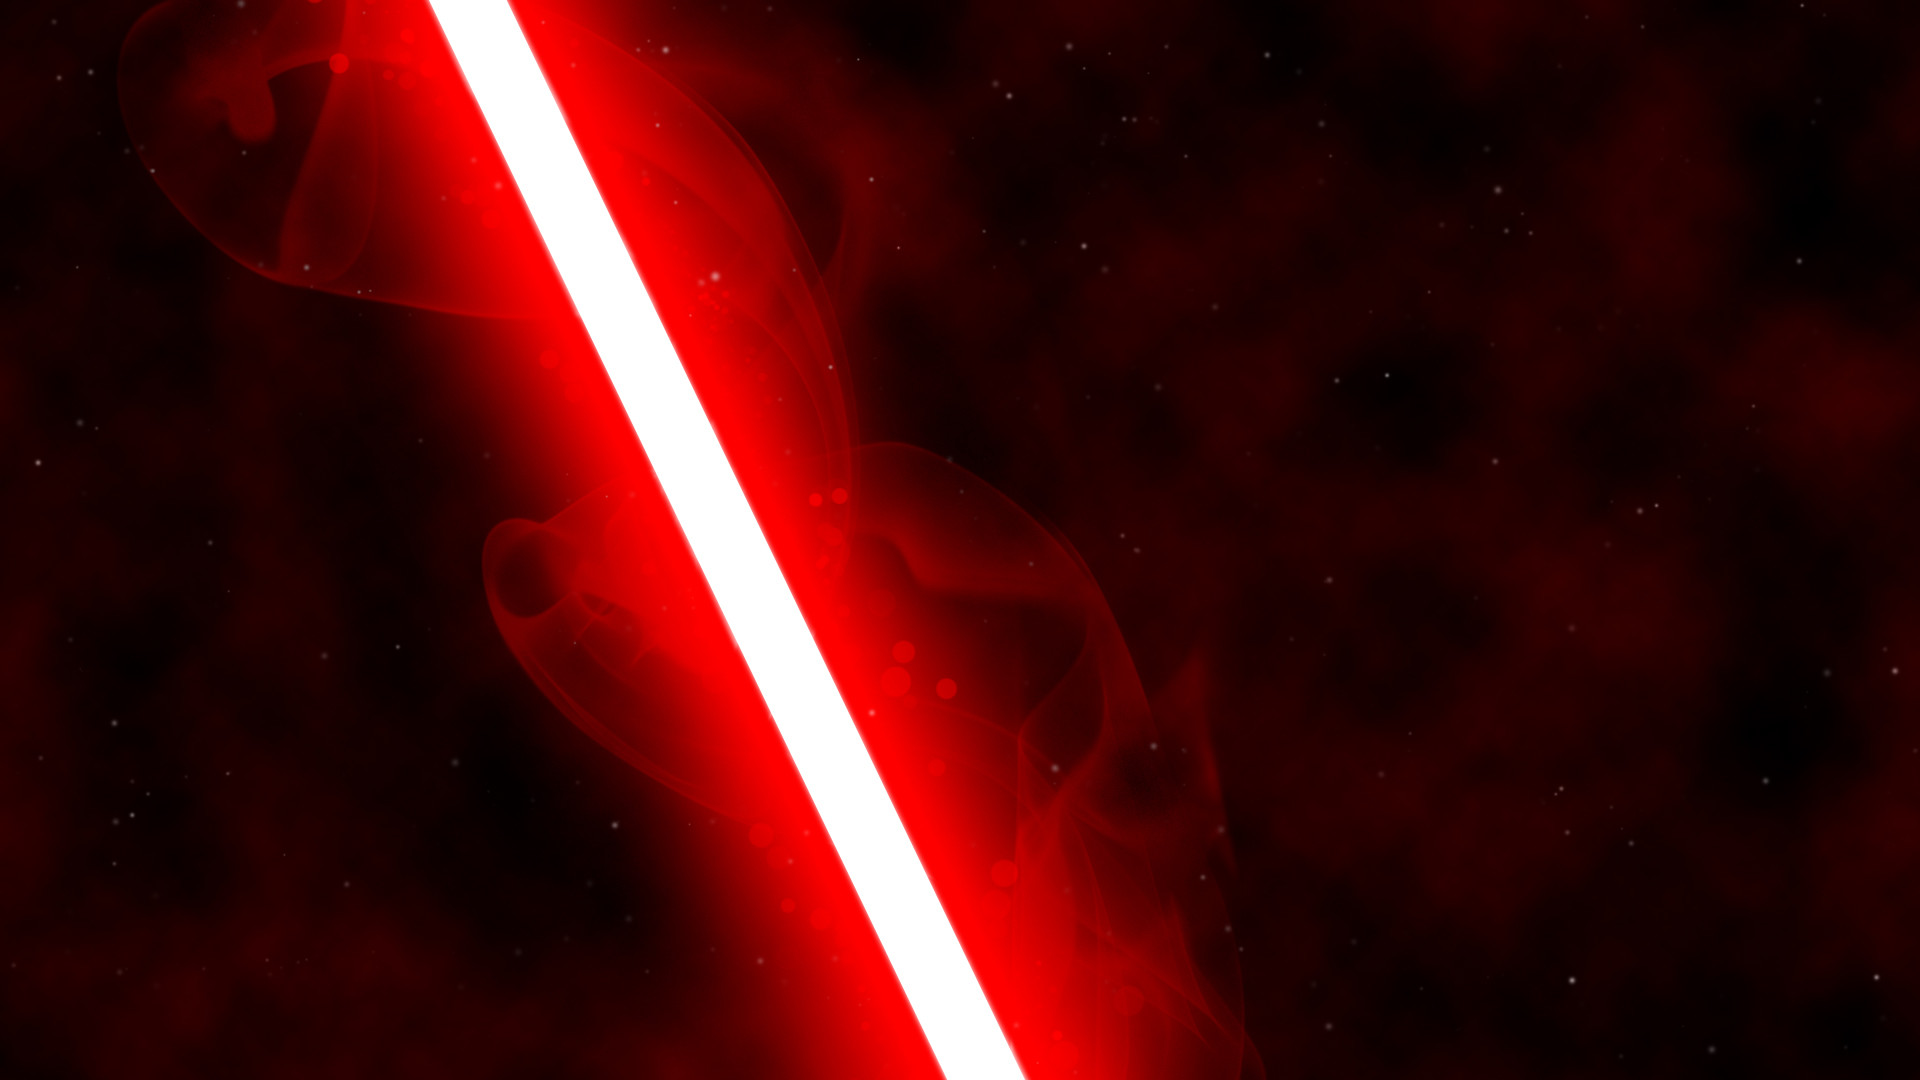 52 <b>Red Saber HD Wallpapers</b> | Backgrounds – <